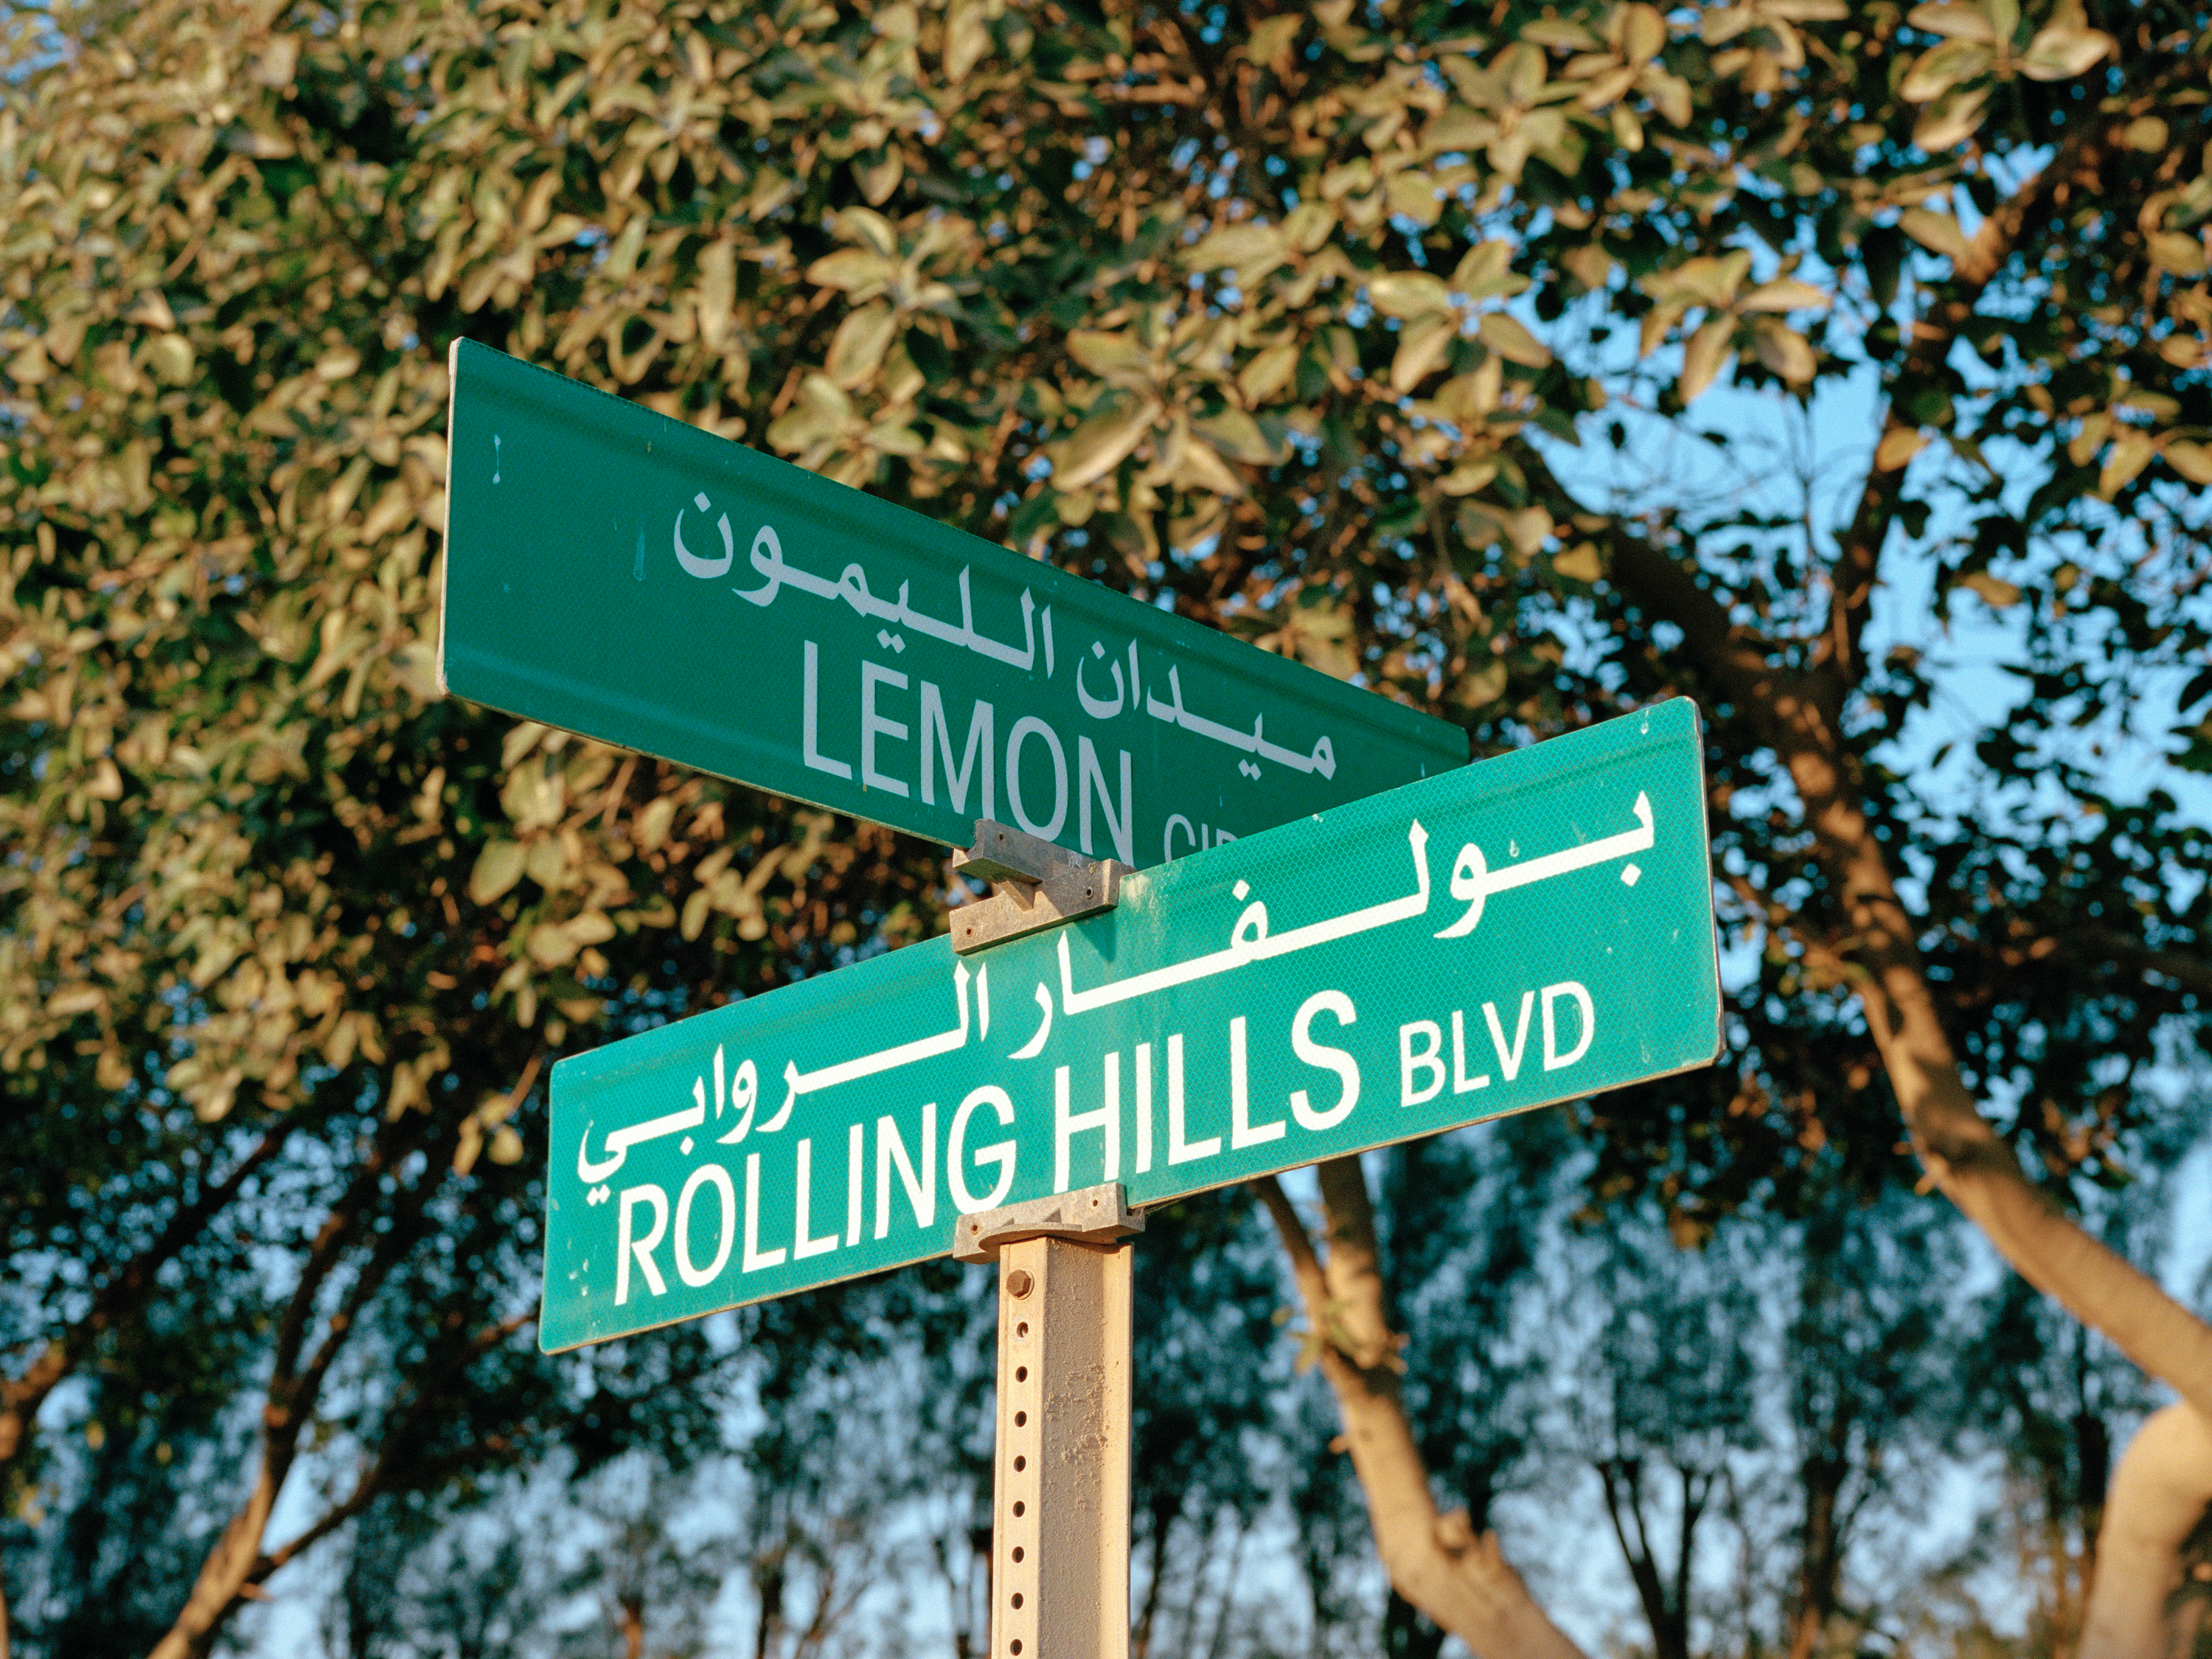 Street signs in Dhahran are written in both Arabic and English.